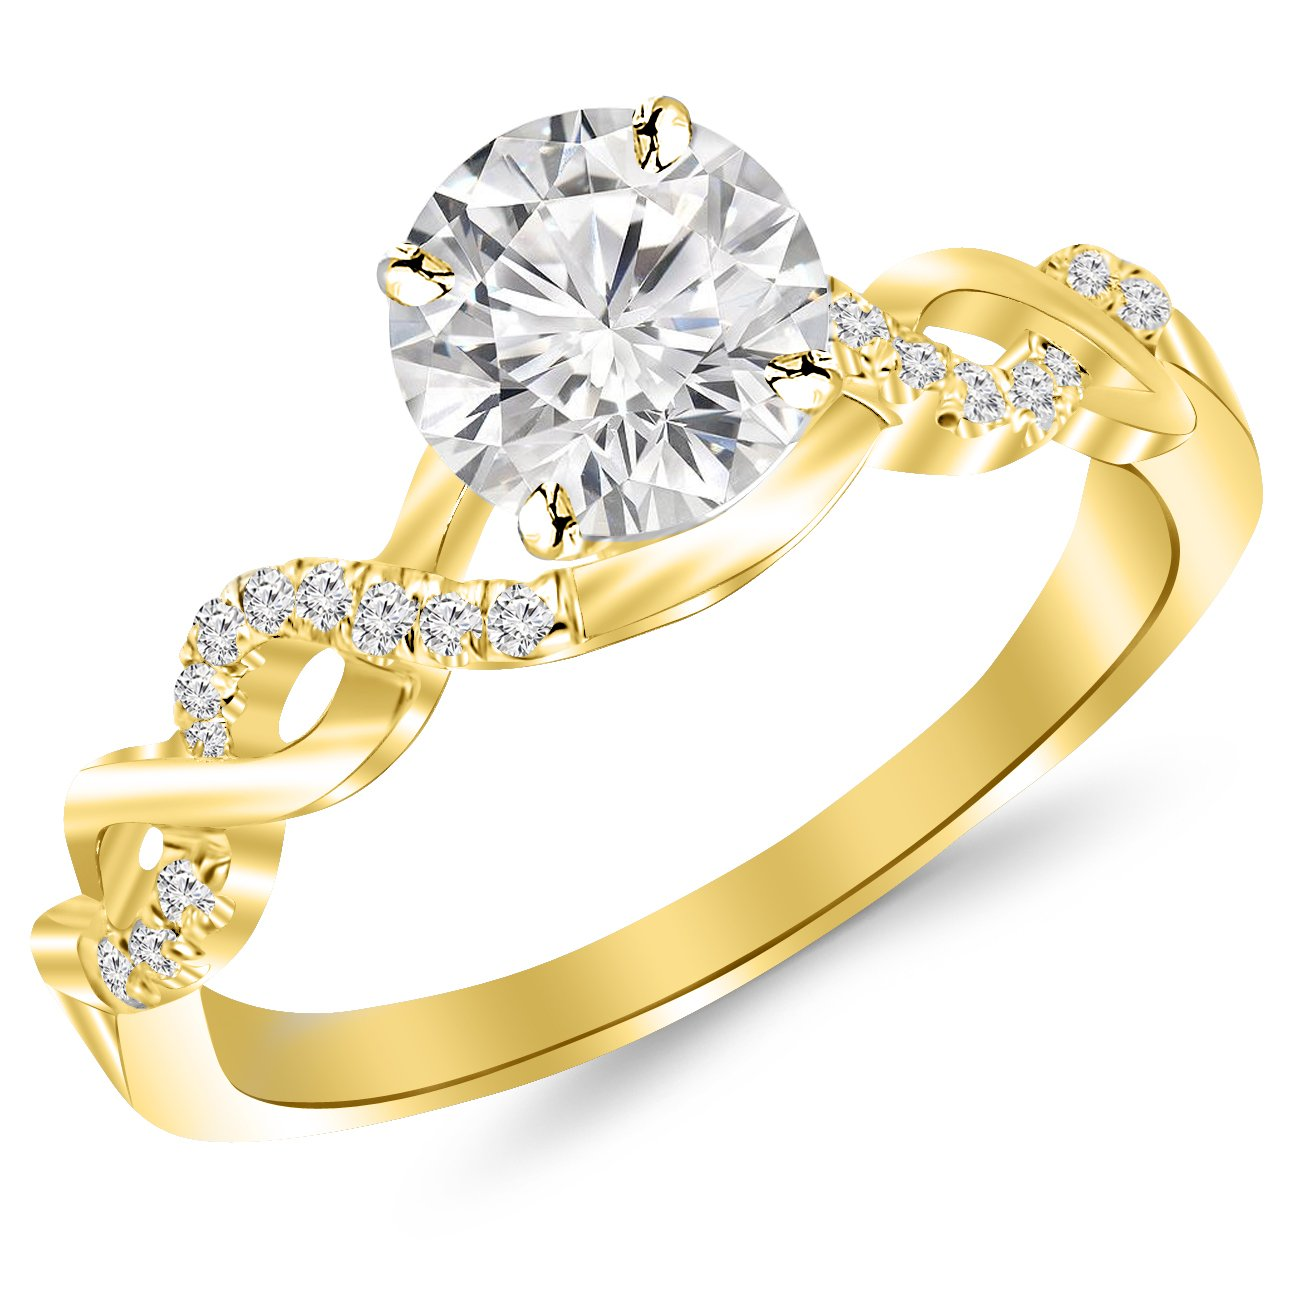 0.63 Carat Twisting Infinity Gold and Diamond Split Shank Pave Set Diamond Engagement Ring 14K Yellow Gold with a 0.5 Carat J-K I2 Center